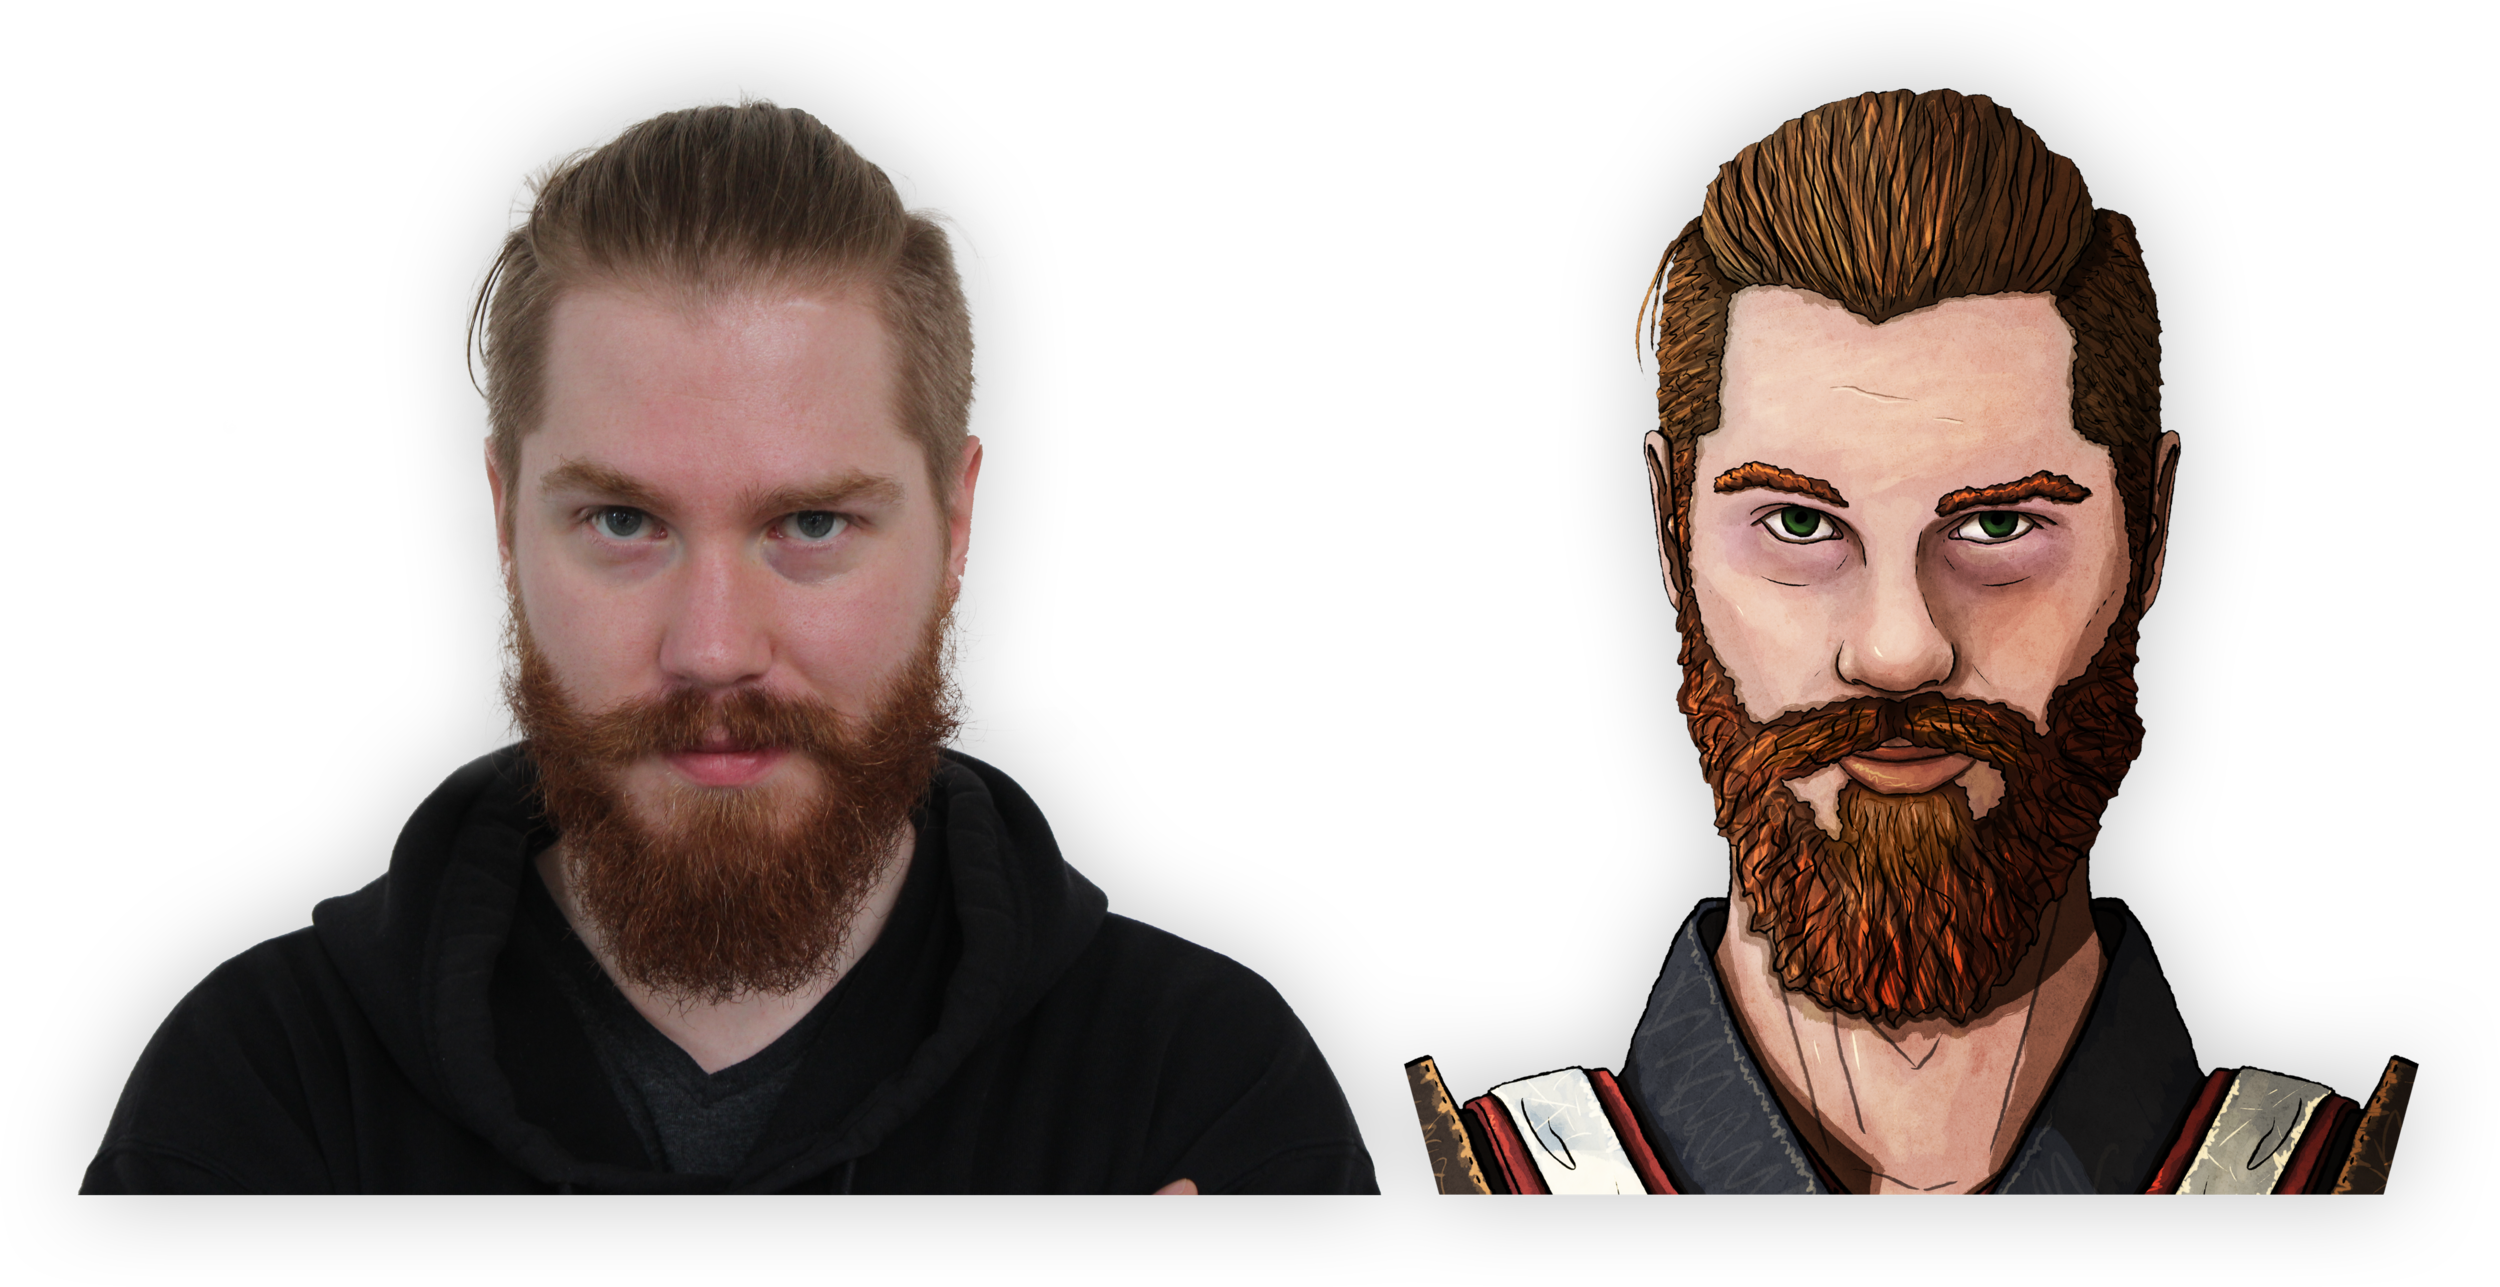 An example! - For reference of what to expect, here is our fantastic voice actor Robert, as the smuggler Artello.